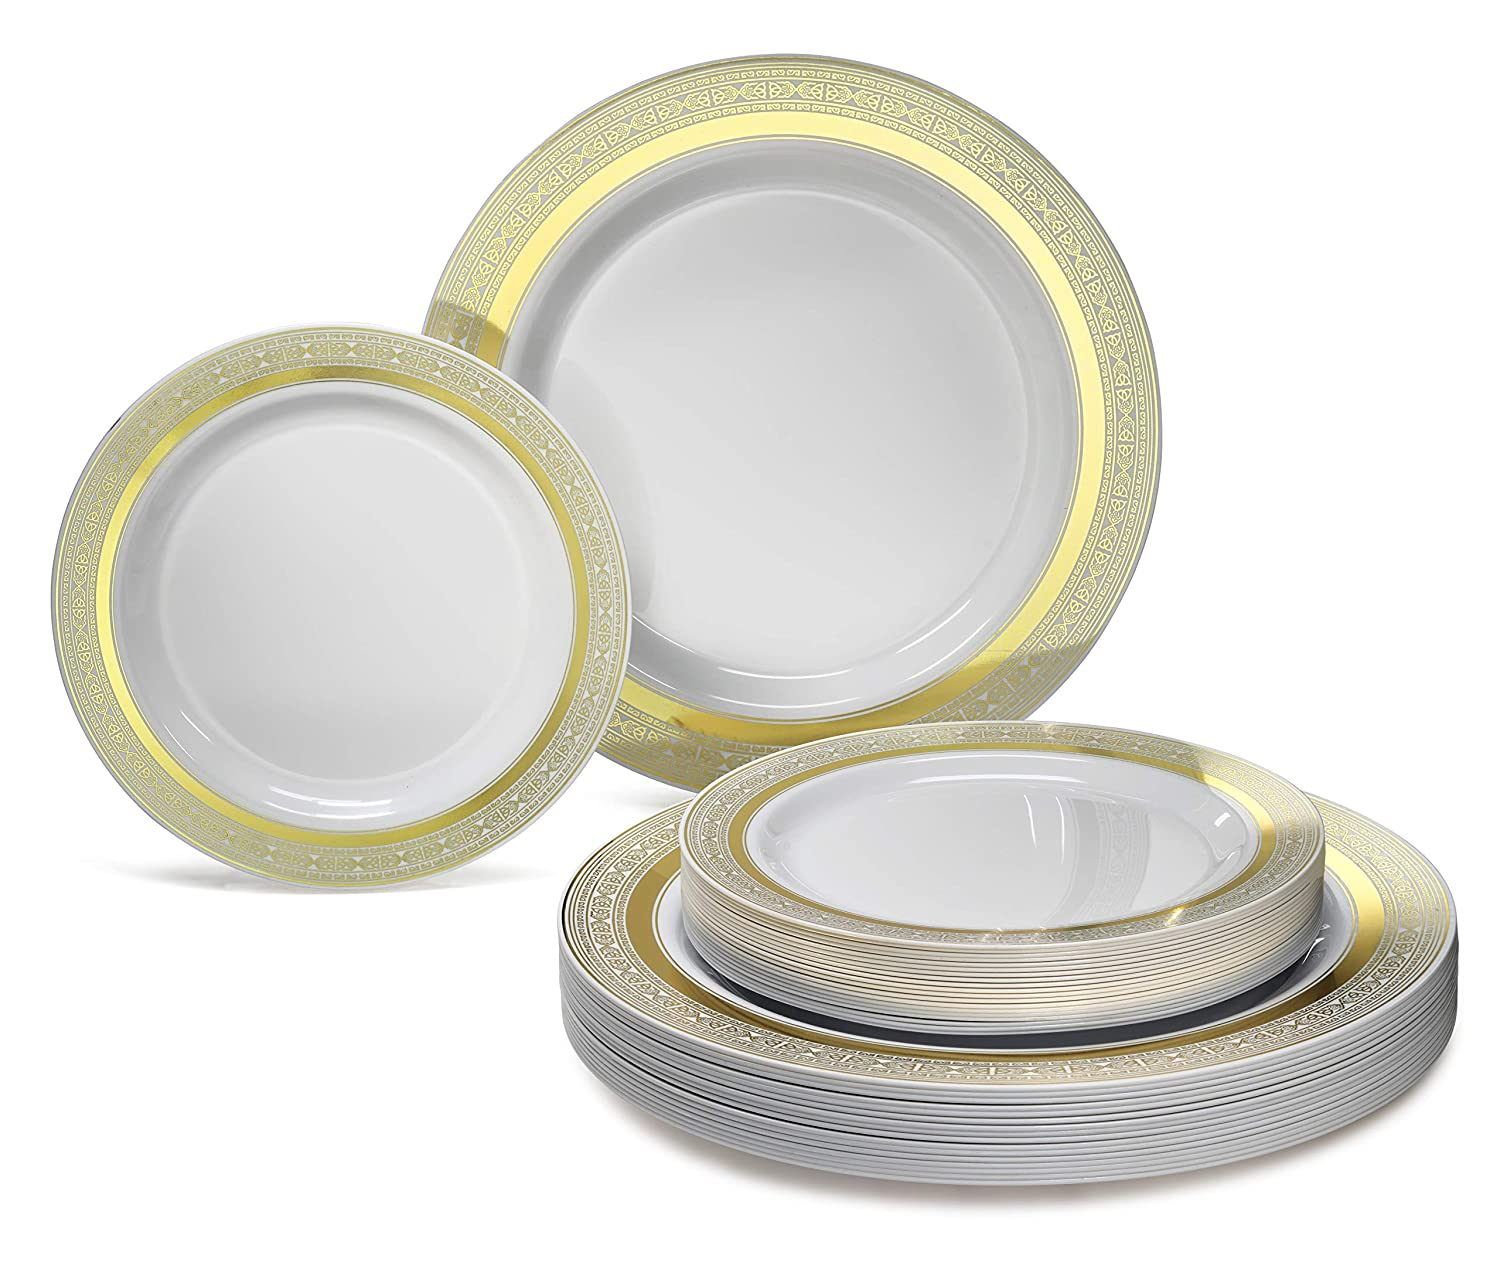 Blossom Ivory//Gold OCCASIONS 120 Pack Heavyweight Wedding Party Disposable Plastic Plates Set 60 x 10.25 Dinner 60 x 7.5 Salad//dessert